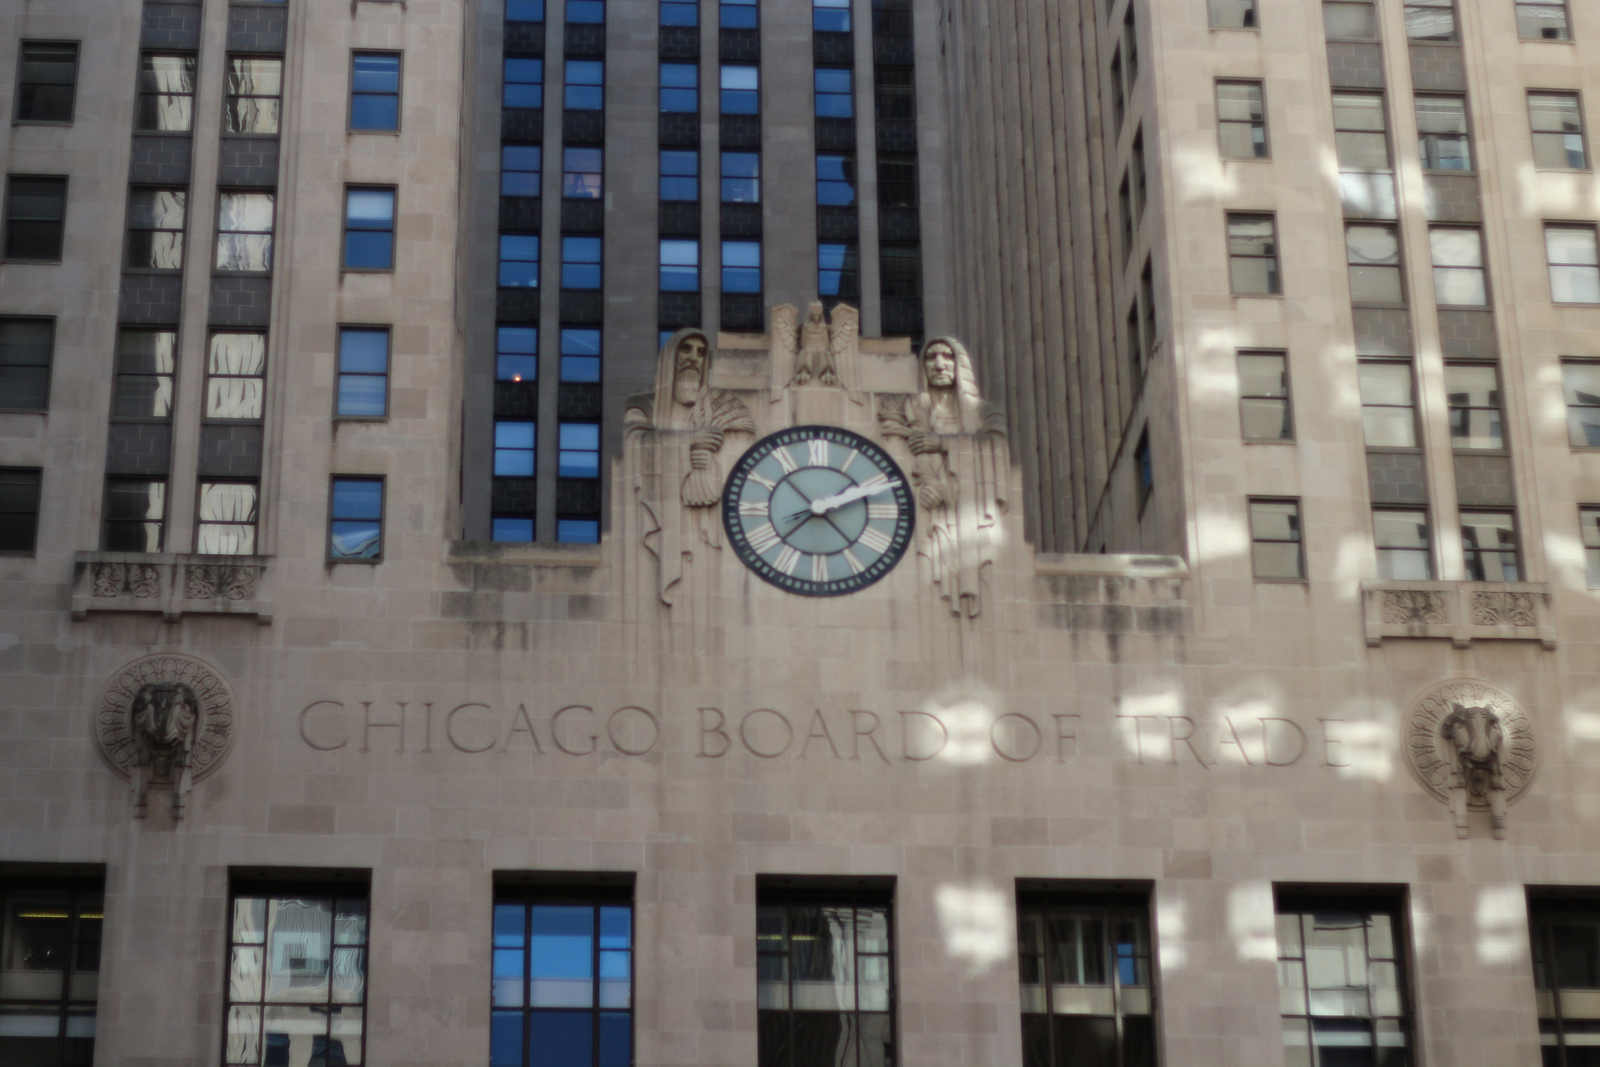 芝加哥期貨交易所 Chicago Board of Trade Building